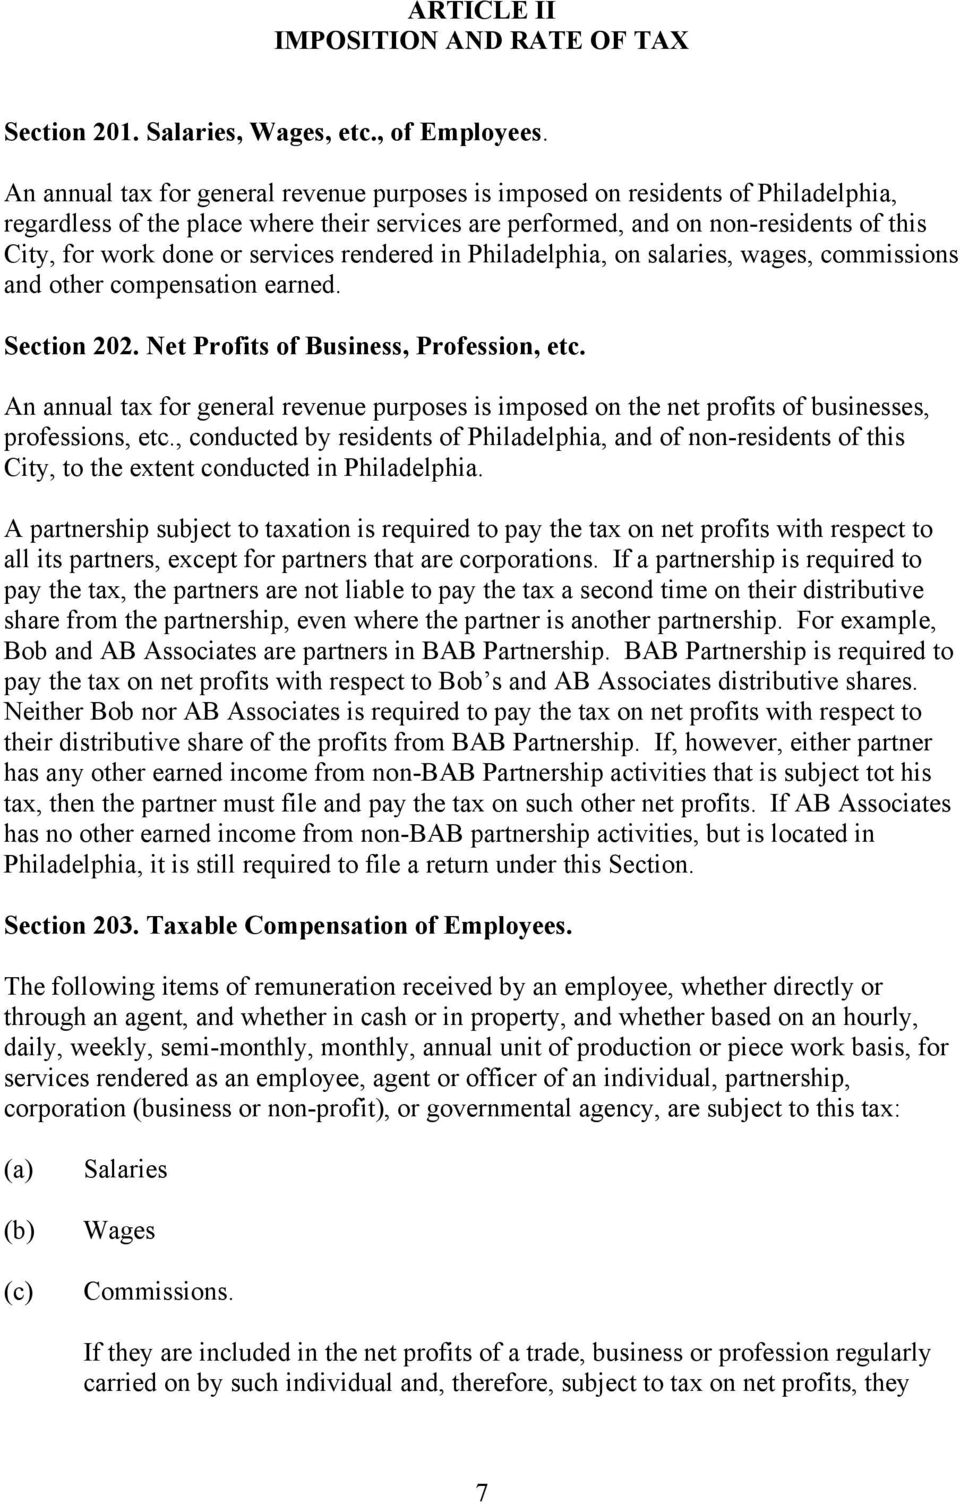 services rendered in Philadelphia, on salaries, wages, commissions and other compensation earned. Section 202. Net Profits of Business, Profession, etc.